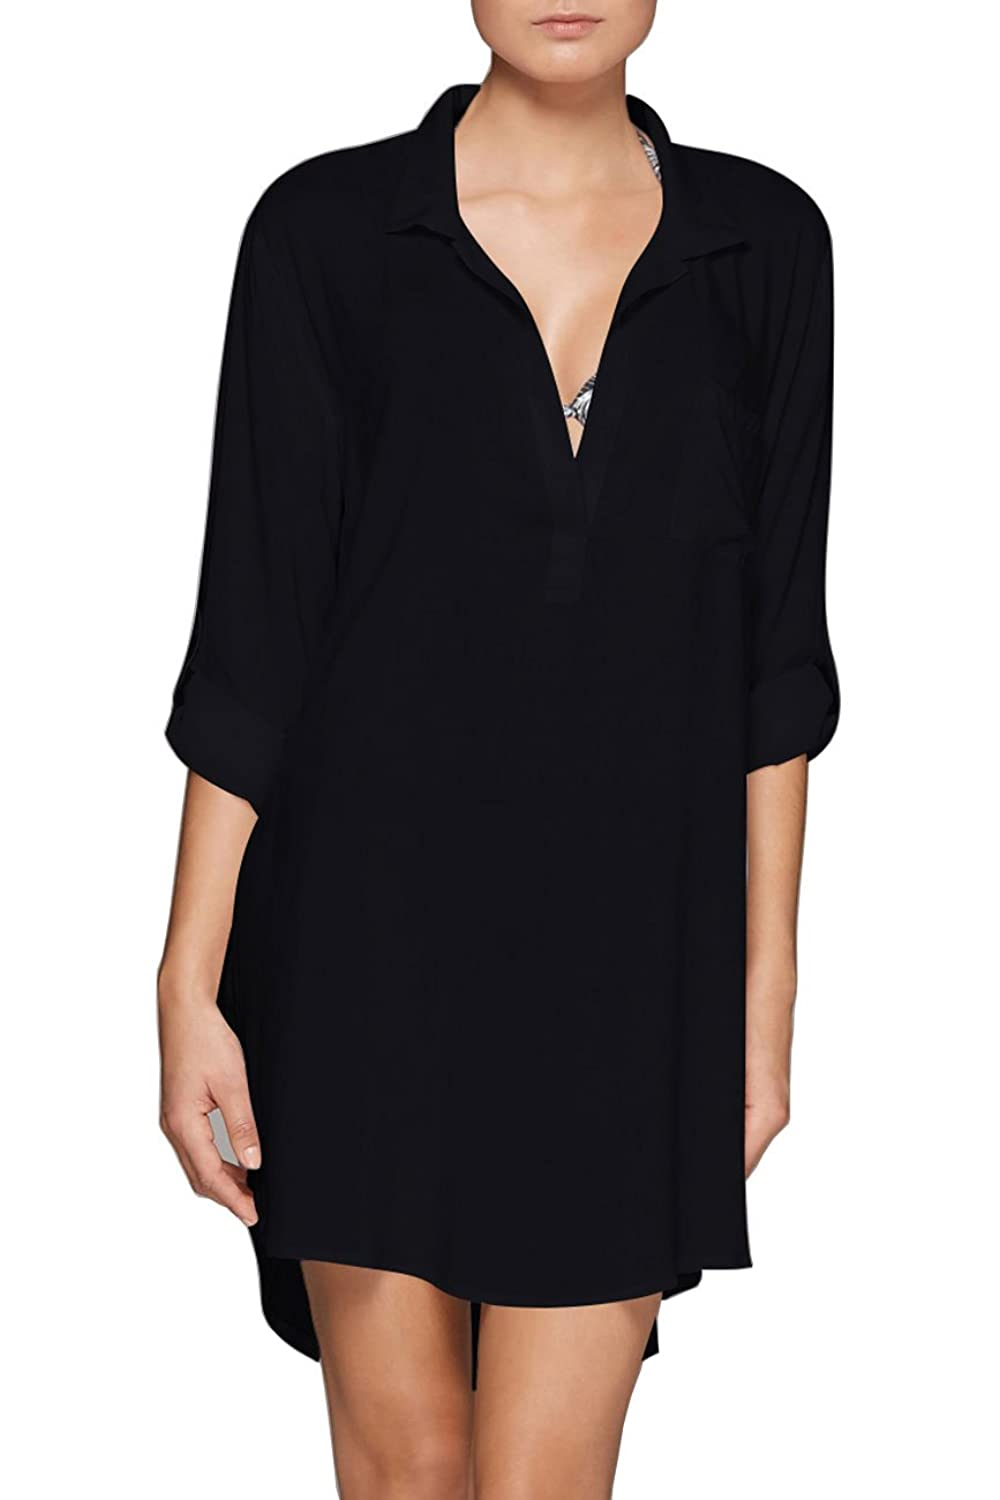 0e94ab6a8f The perfect oversized shirt dress. Great for over bathers at the pool. Long  roll sleeves for sun coverage ,Side splits ,Pockets.